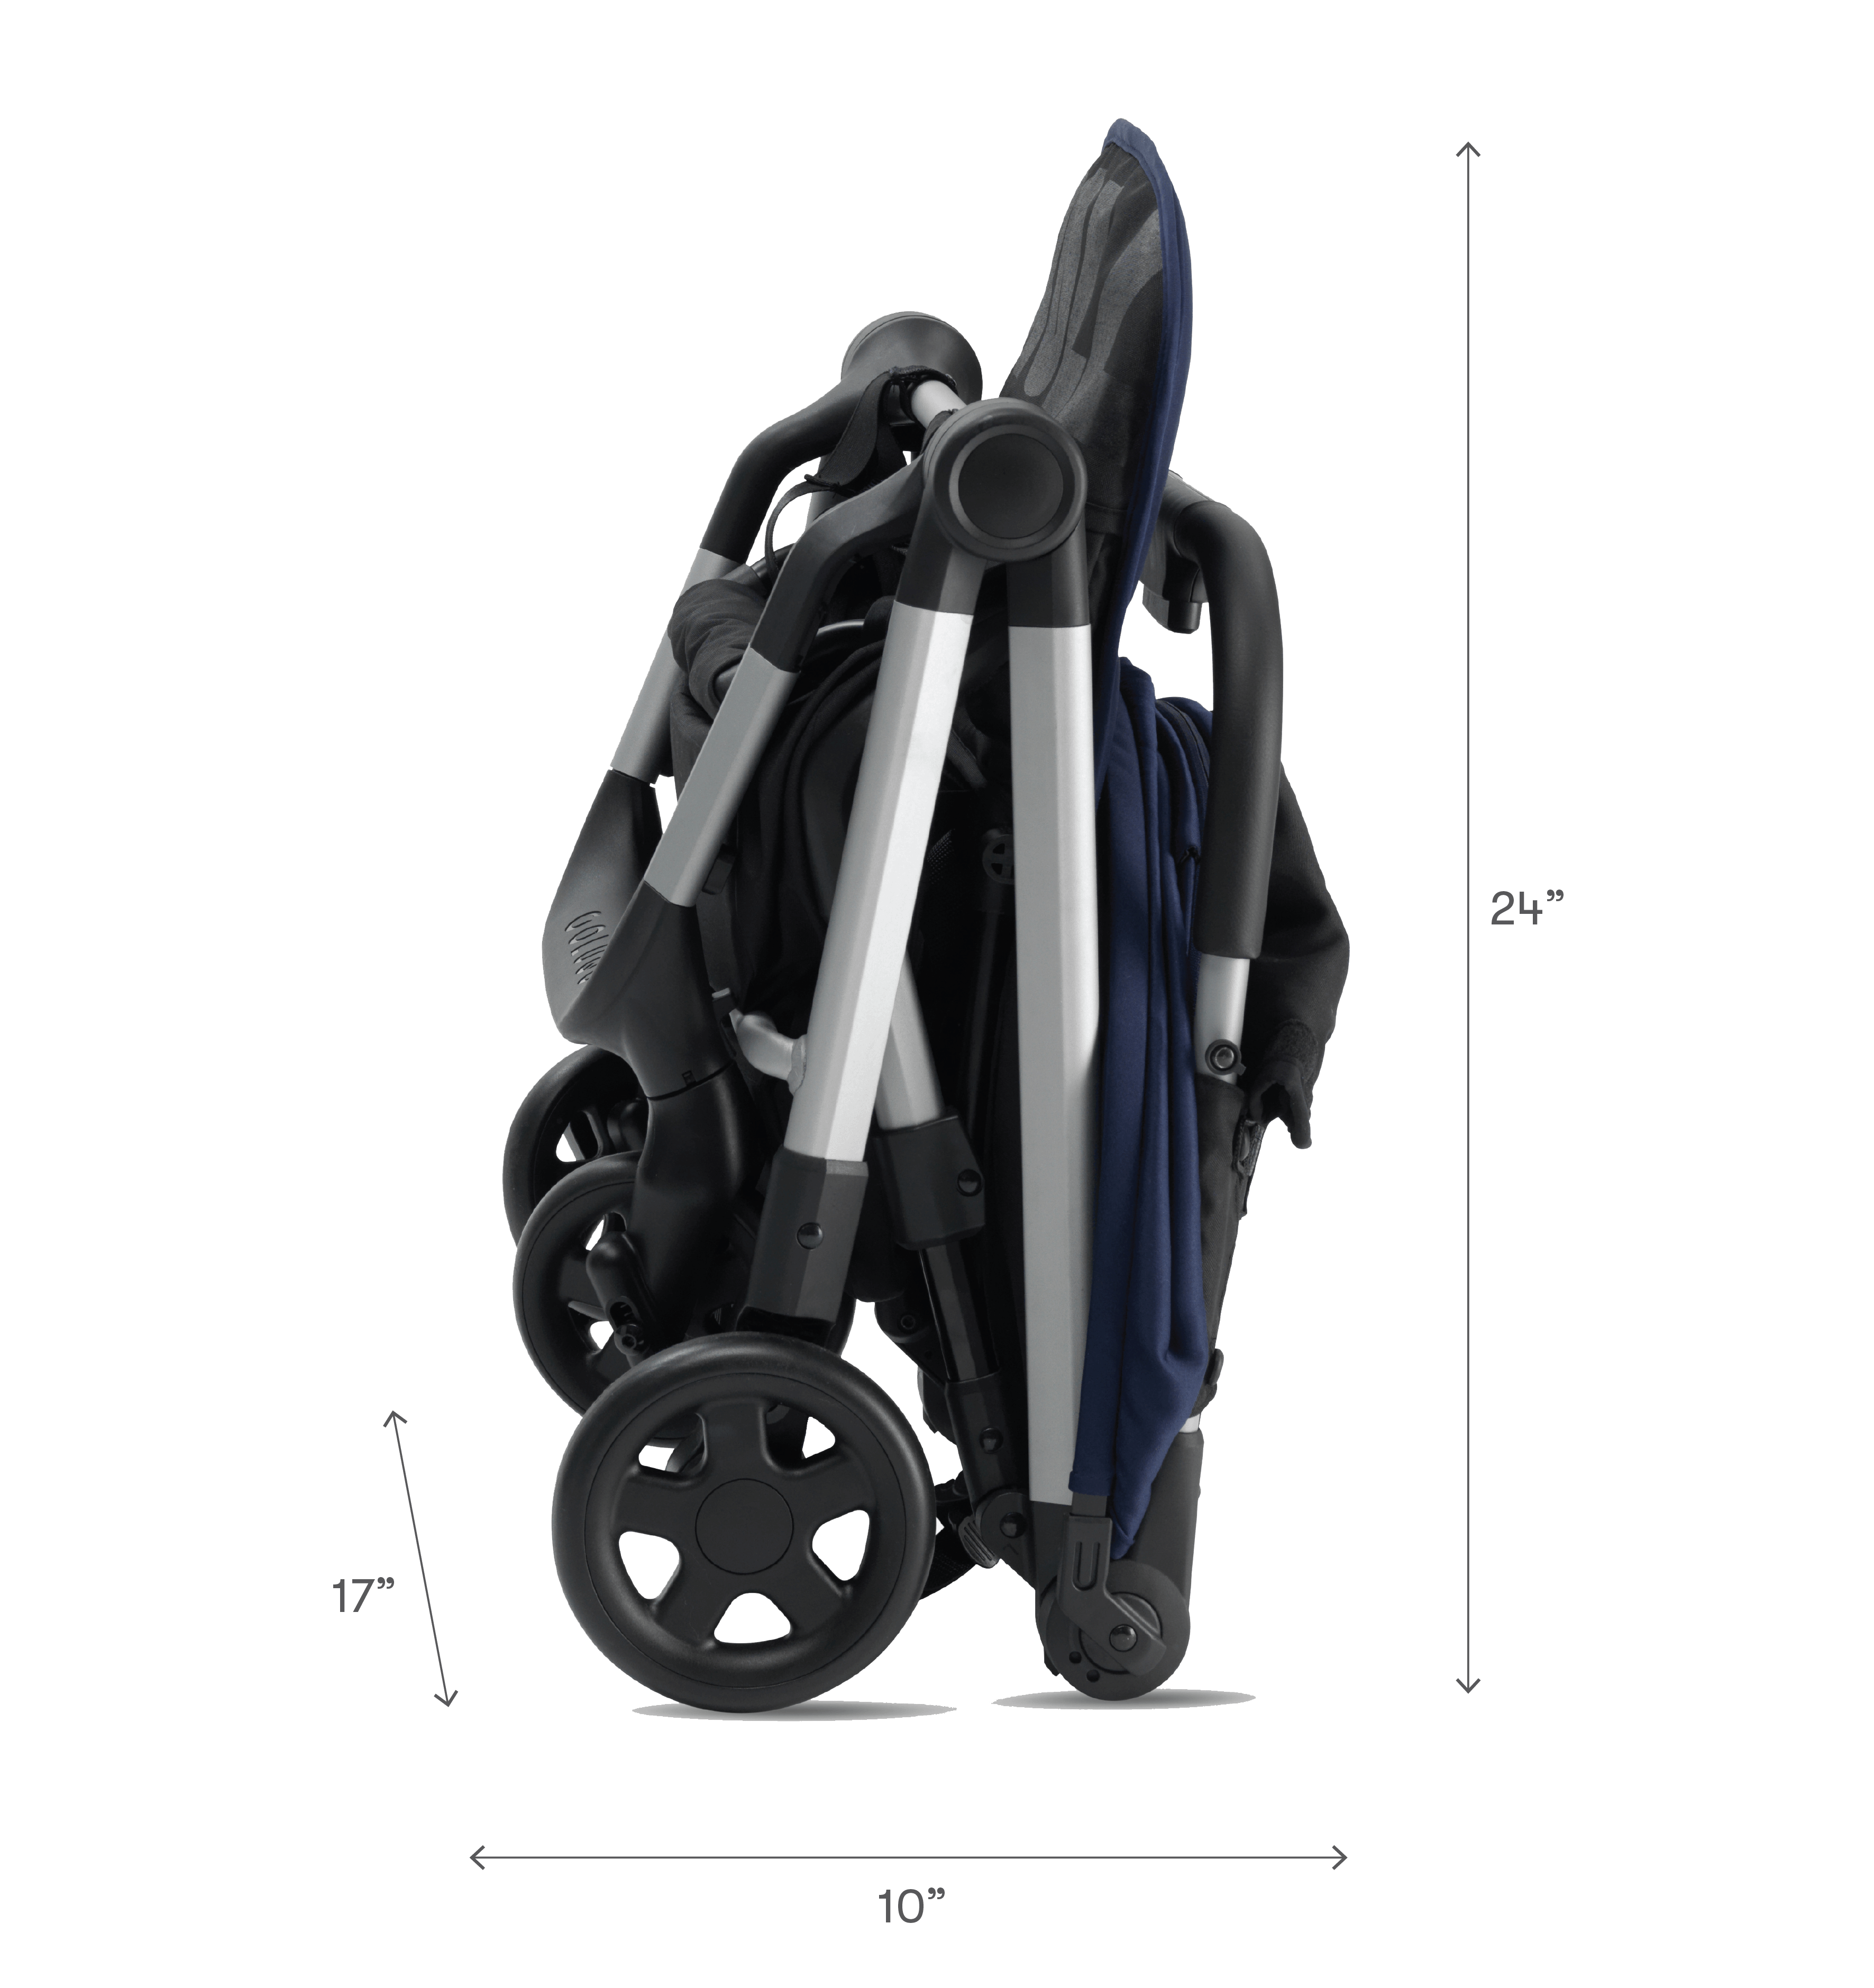 The Compact Stroller Navy Compact, Baby safe, Folded up